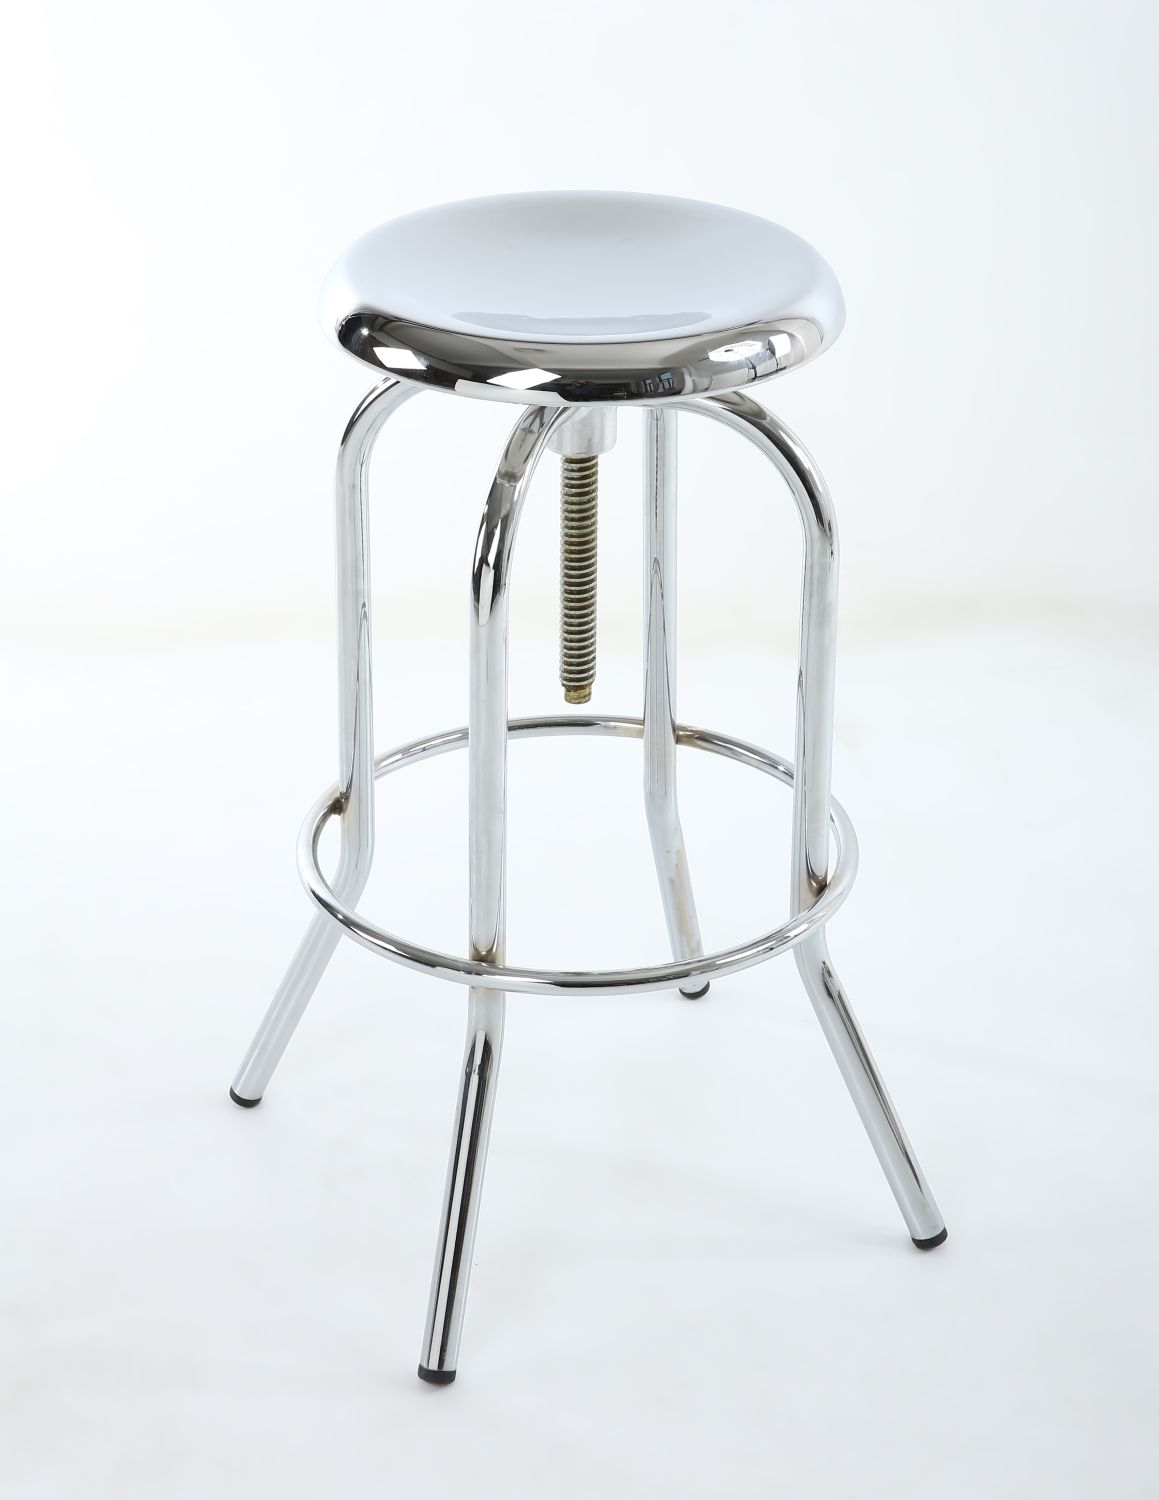 Mercury Polished Chrome Adjule Bar Stool Retro Style